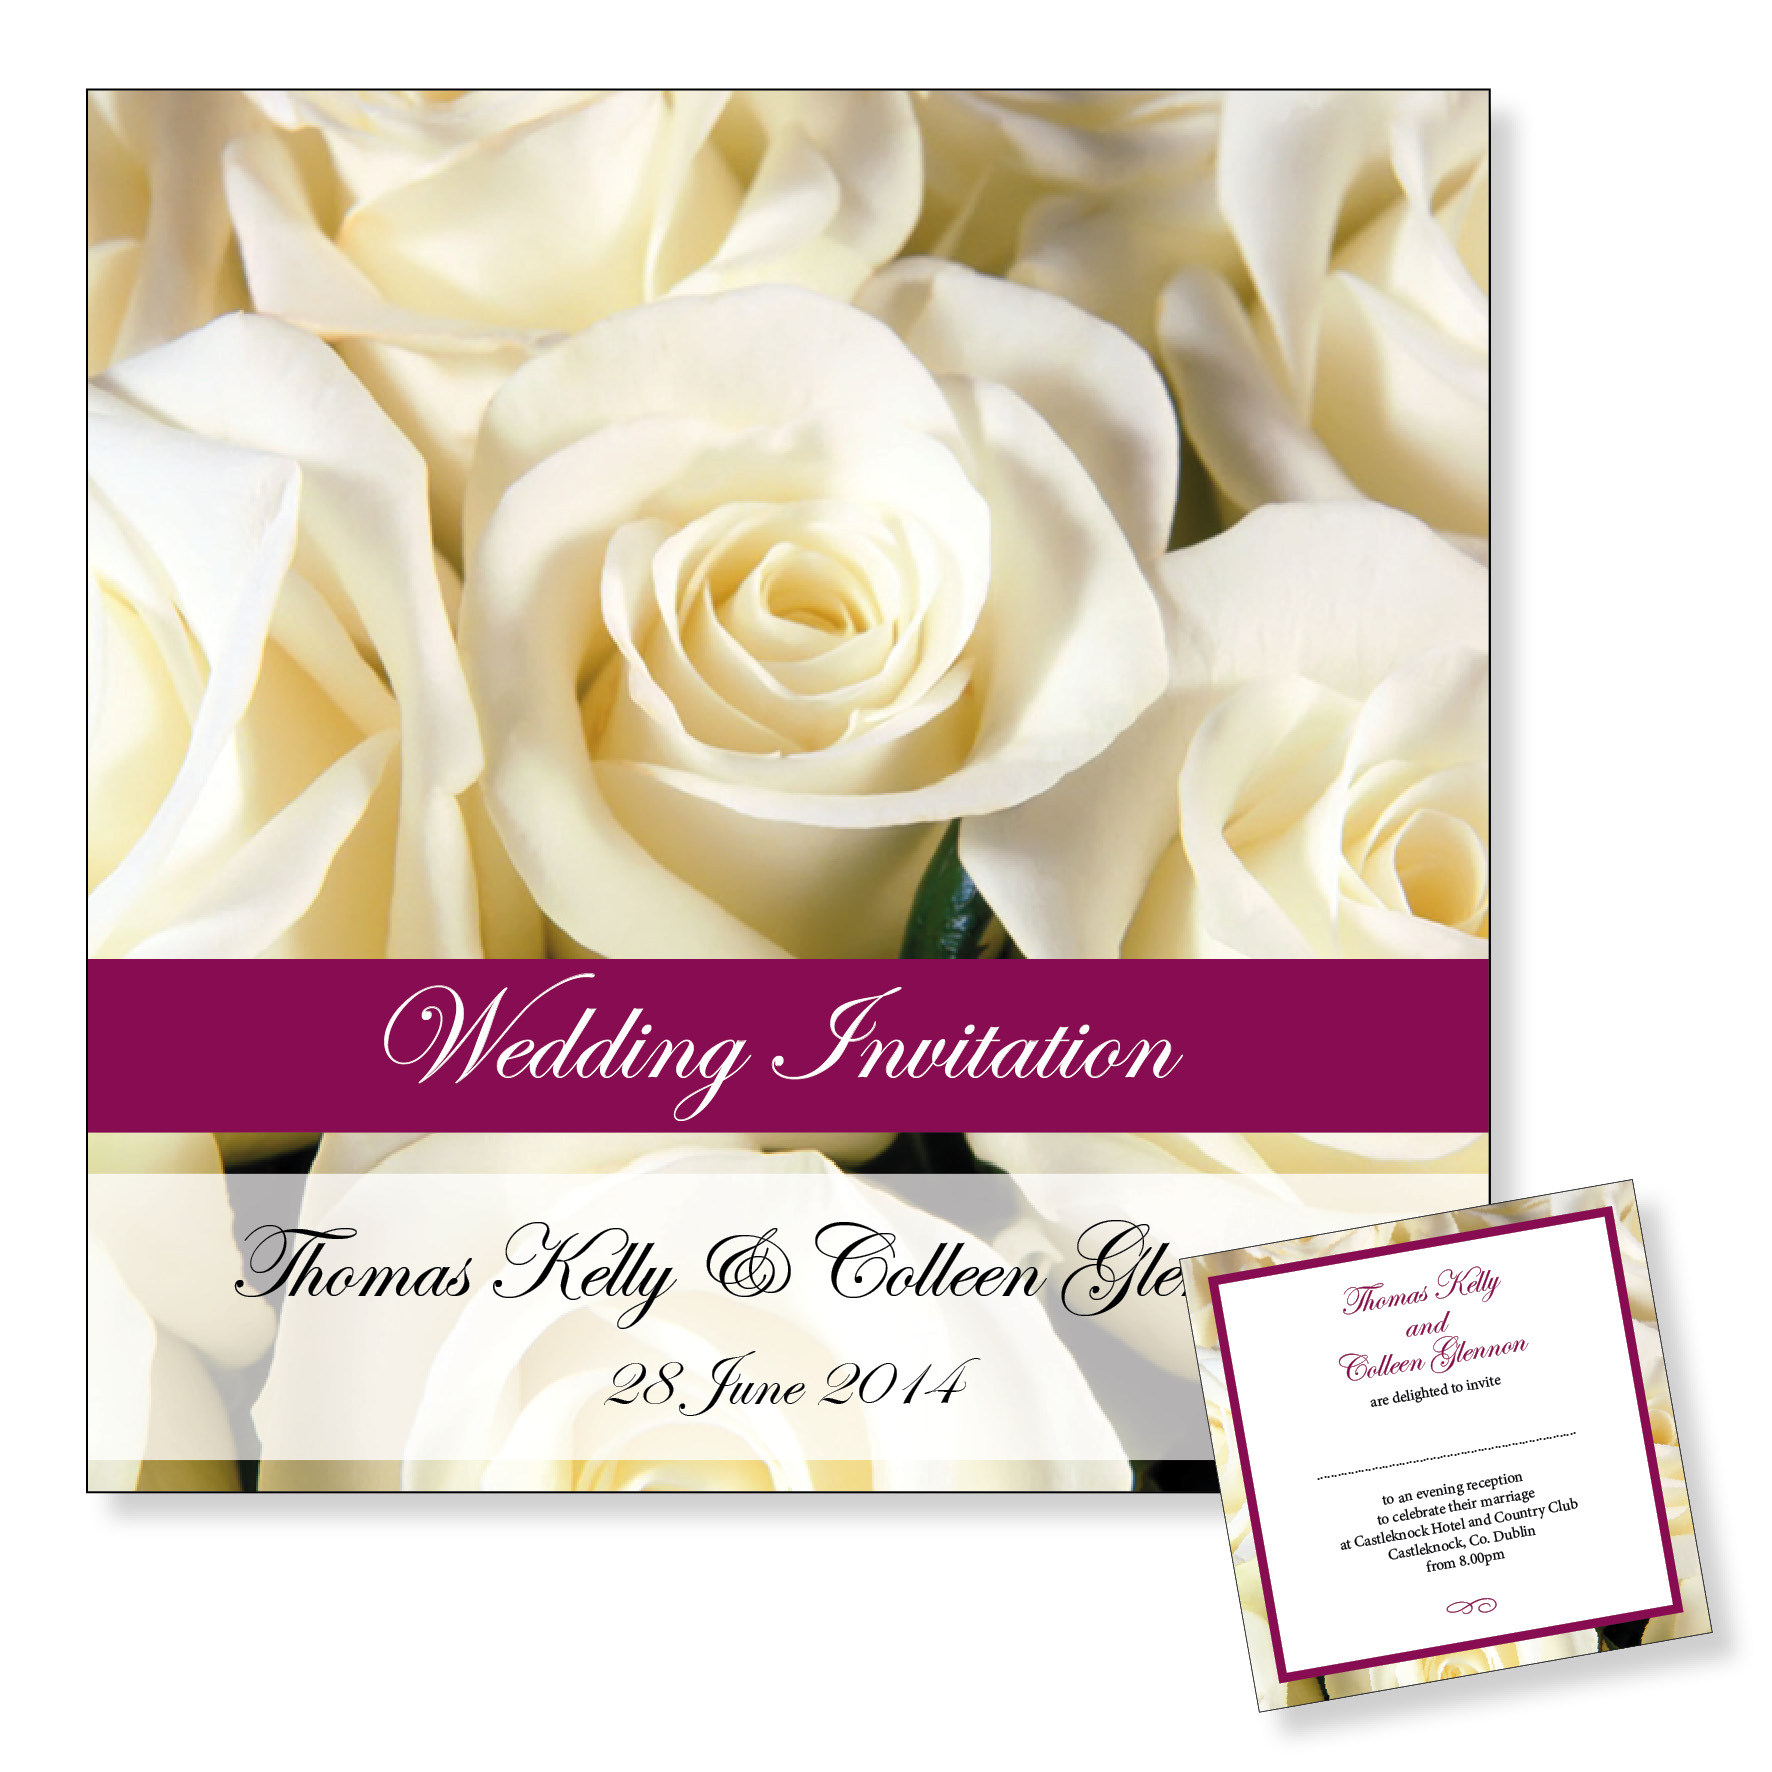 Evening wedding invitation - White roses